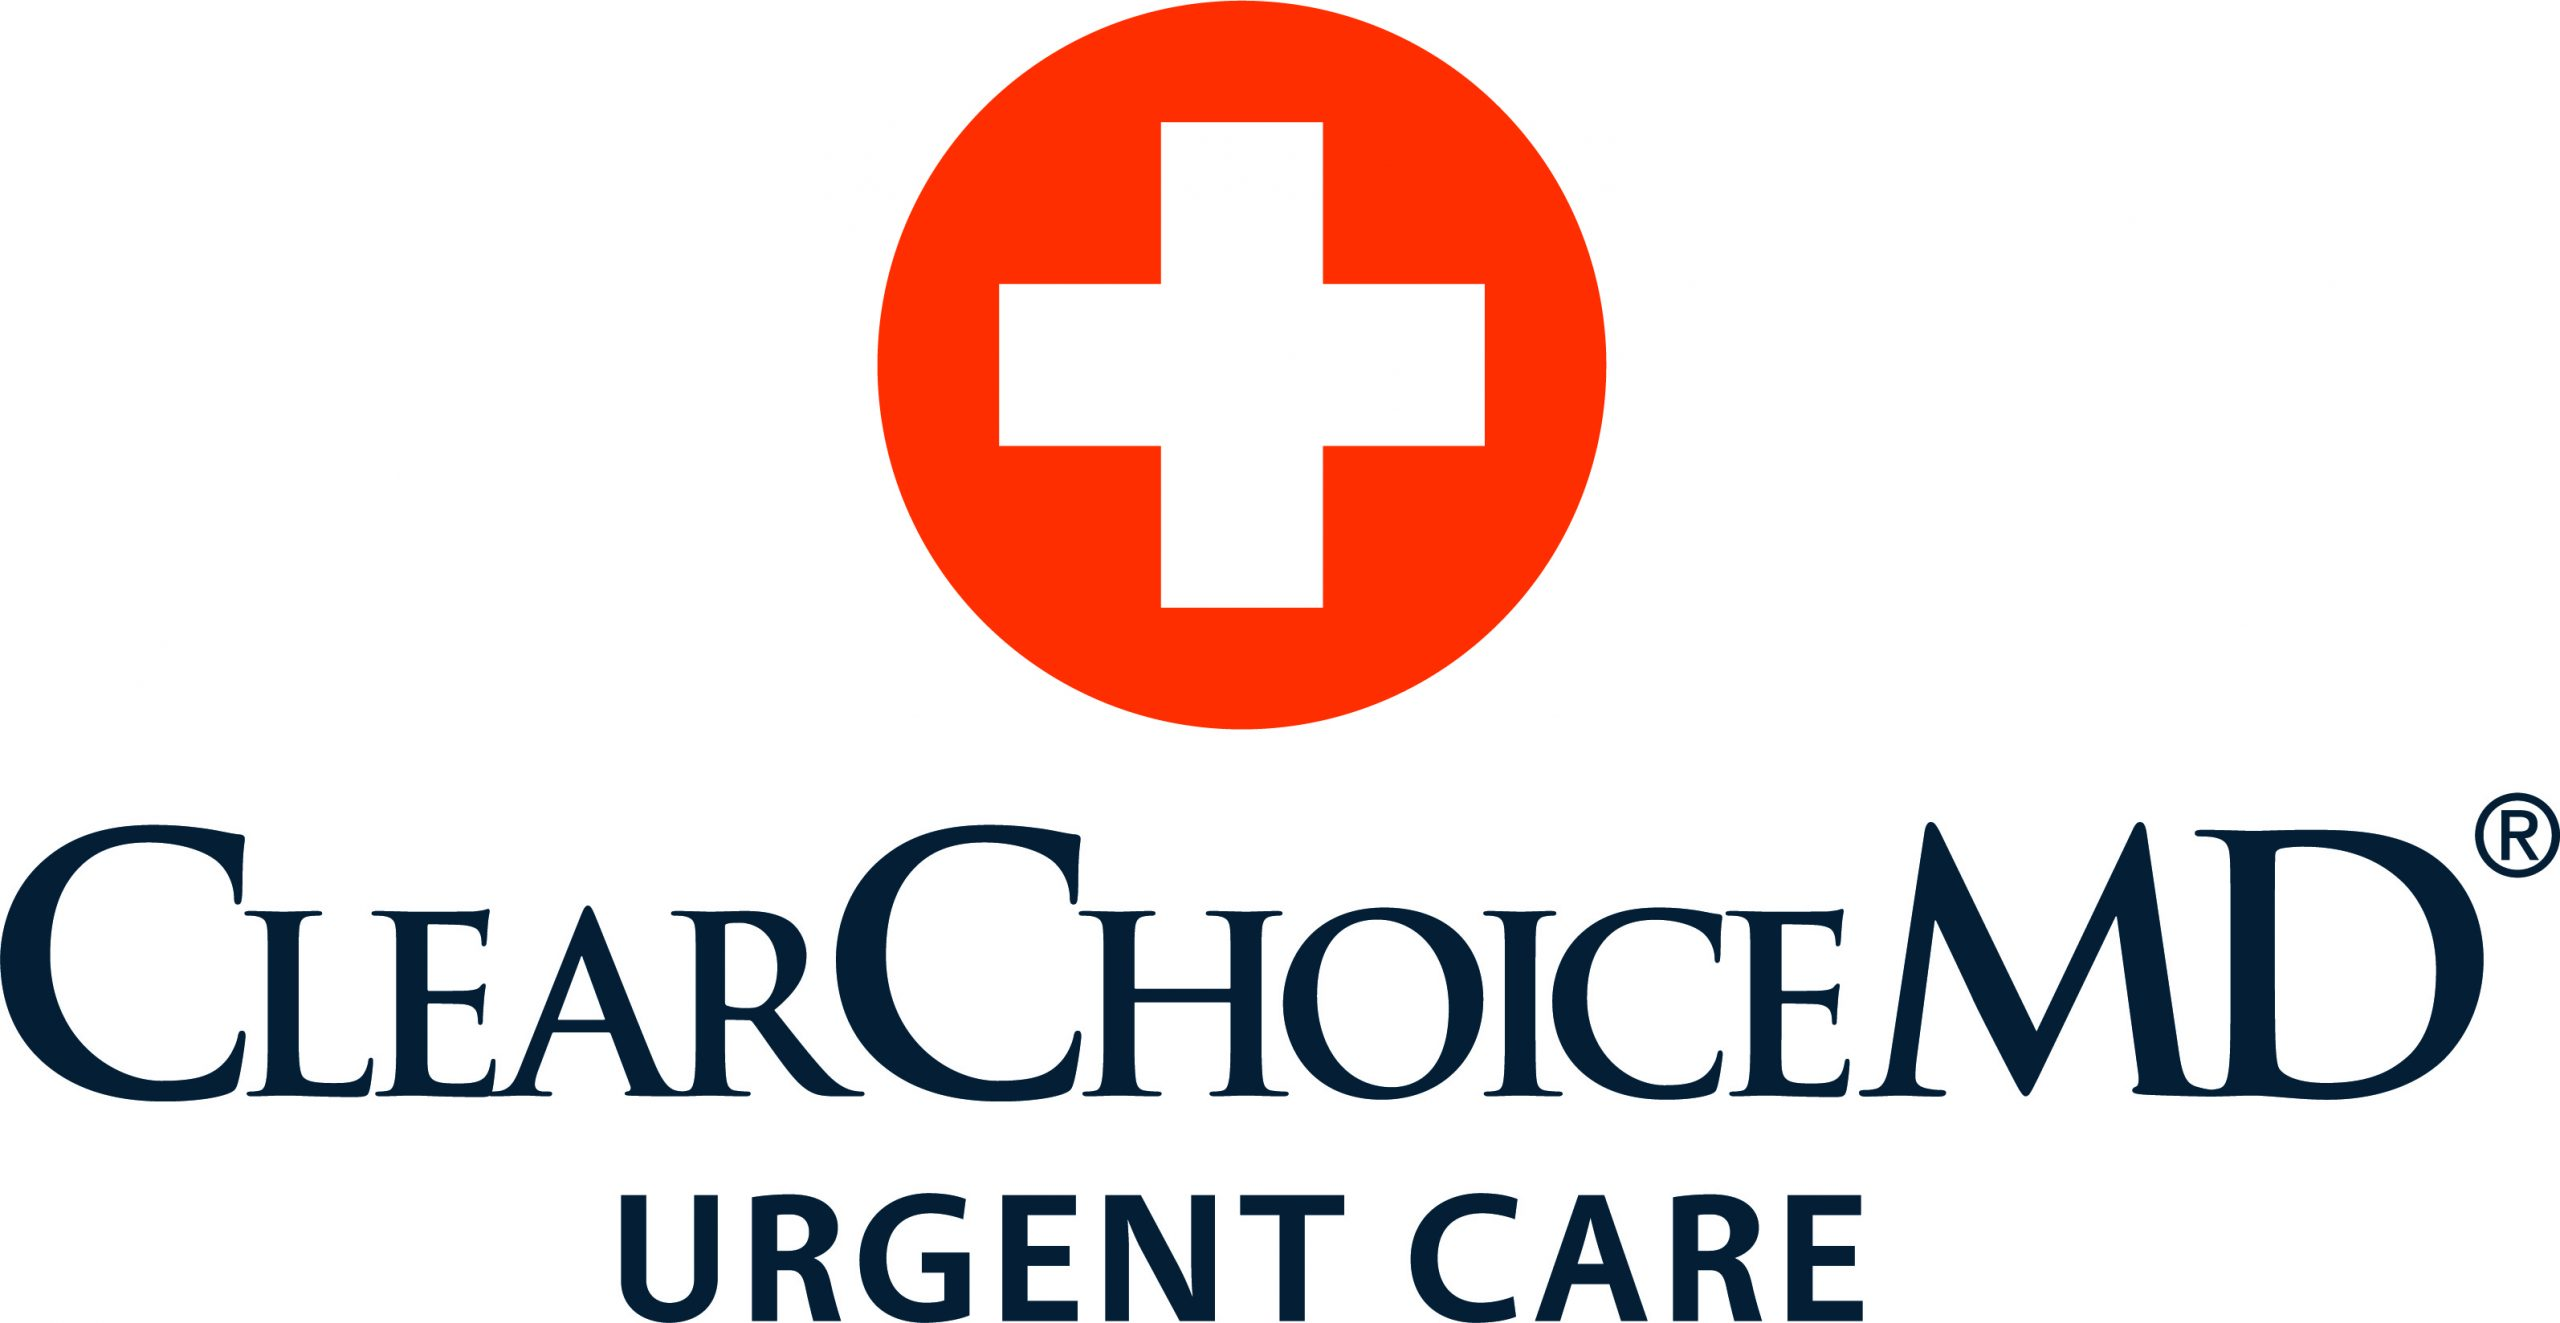 https://dq0rwgc946ldn.cloudfront.net/wp-content/uploads/2021/04/ClearChoiceMD-Urgent-Care-scaled.jpg